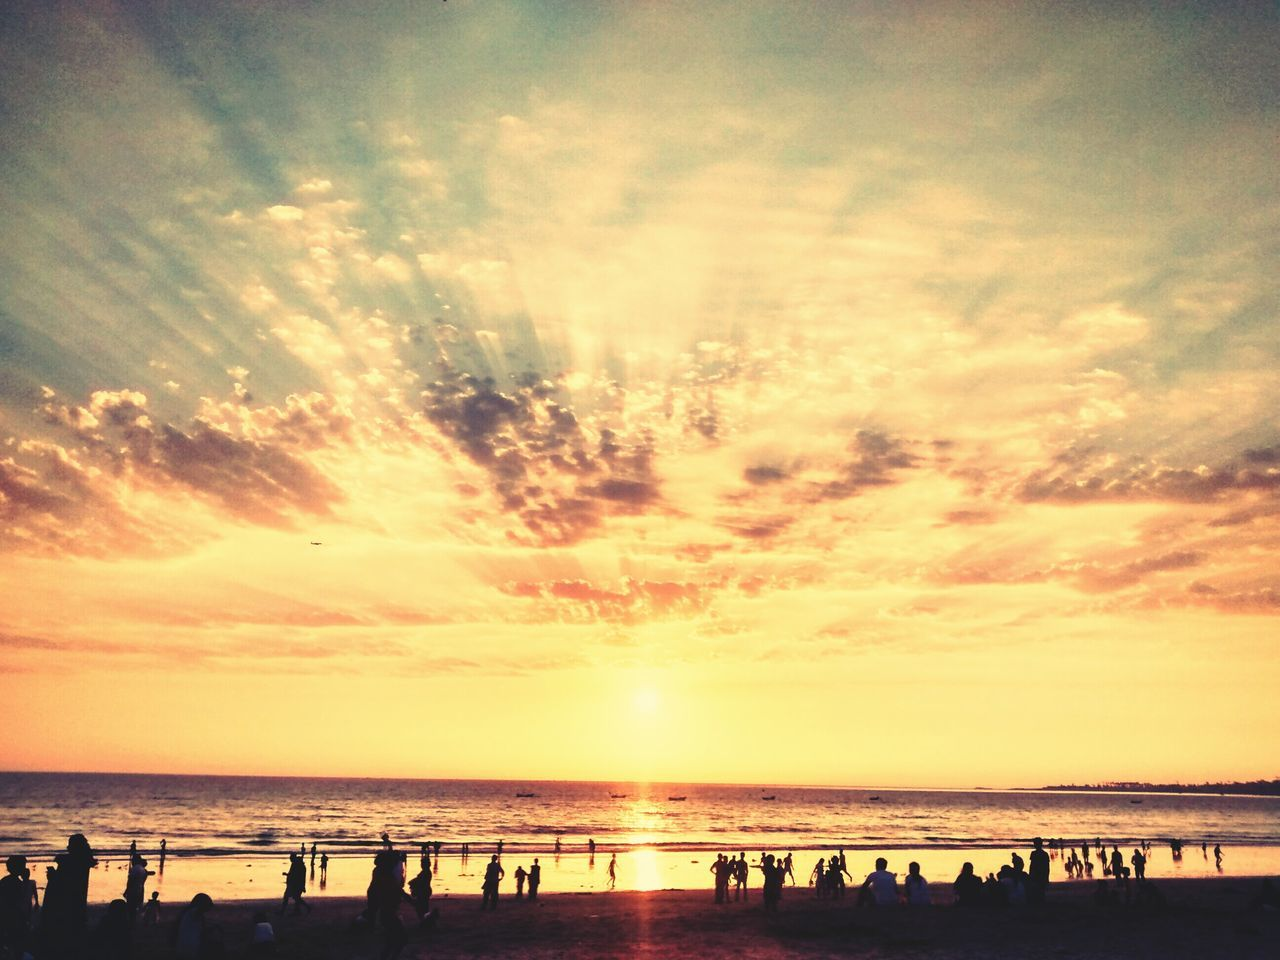 sunset, sky, silhouette, sea, beach, water, scenics, beauty in nature, cloud - sky, horizon over water, tranquil scene, nature, sun, tranquility, large group of people, horizon, outdoors, people